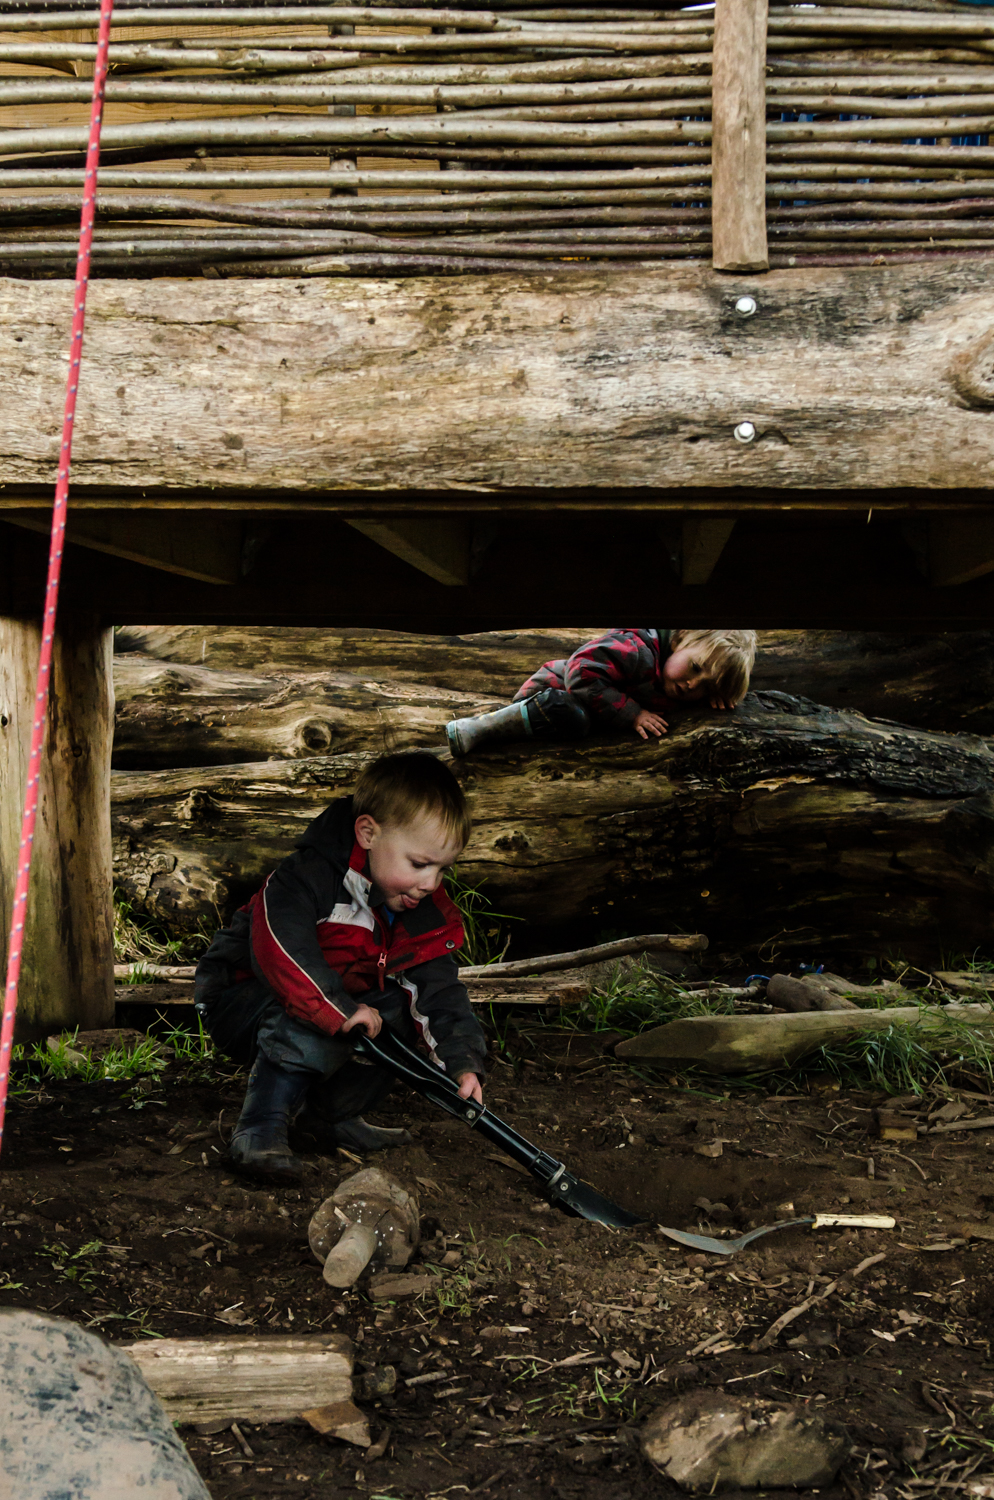 """I wonder if I'll dig up some treasure?"" - Tools play a pivotal role in Forest School, whether it's a hammer, a stick or paintbrush. They open up opportunities for many facets of development and learning."